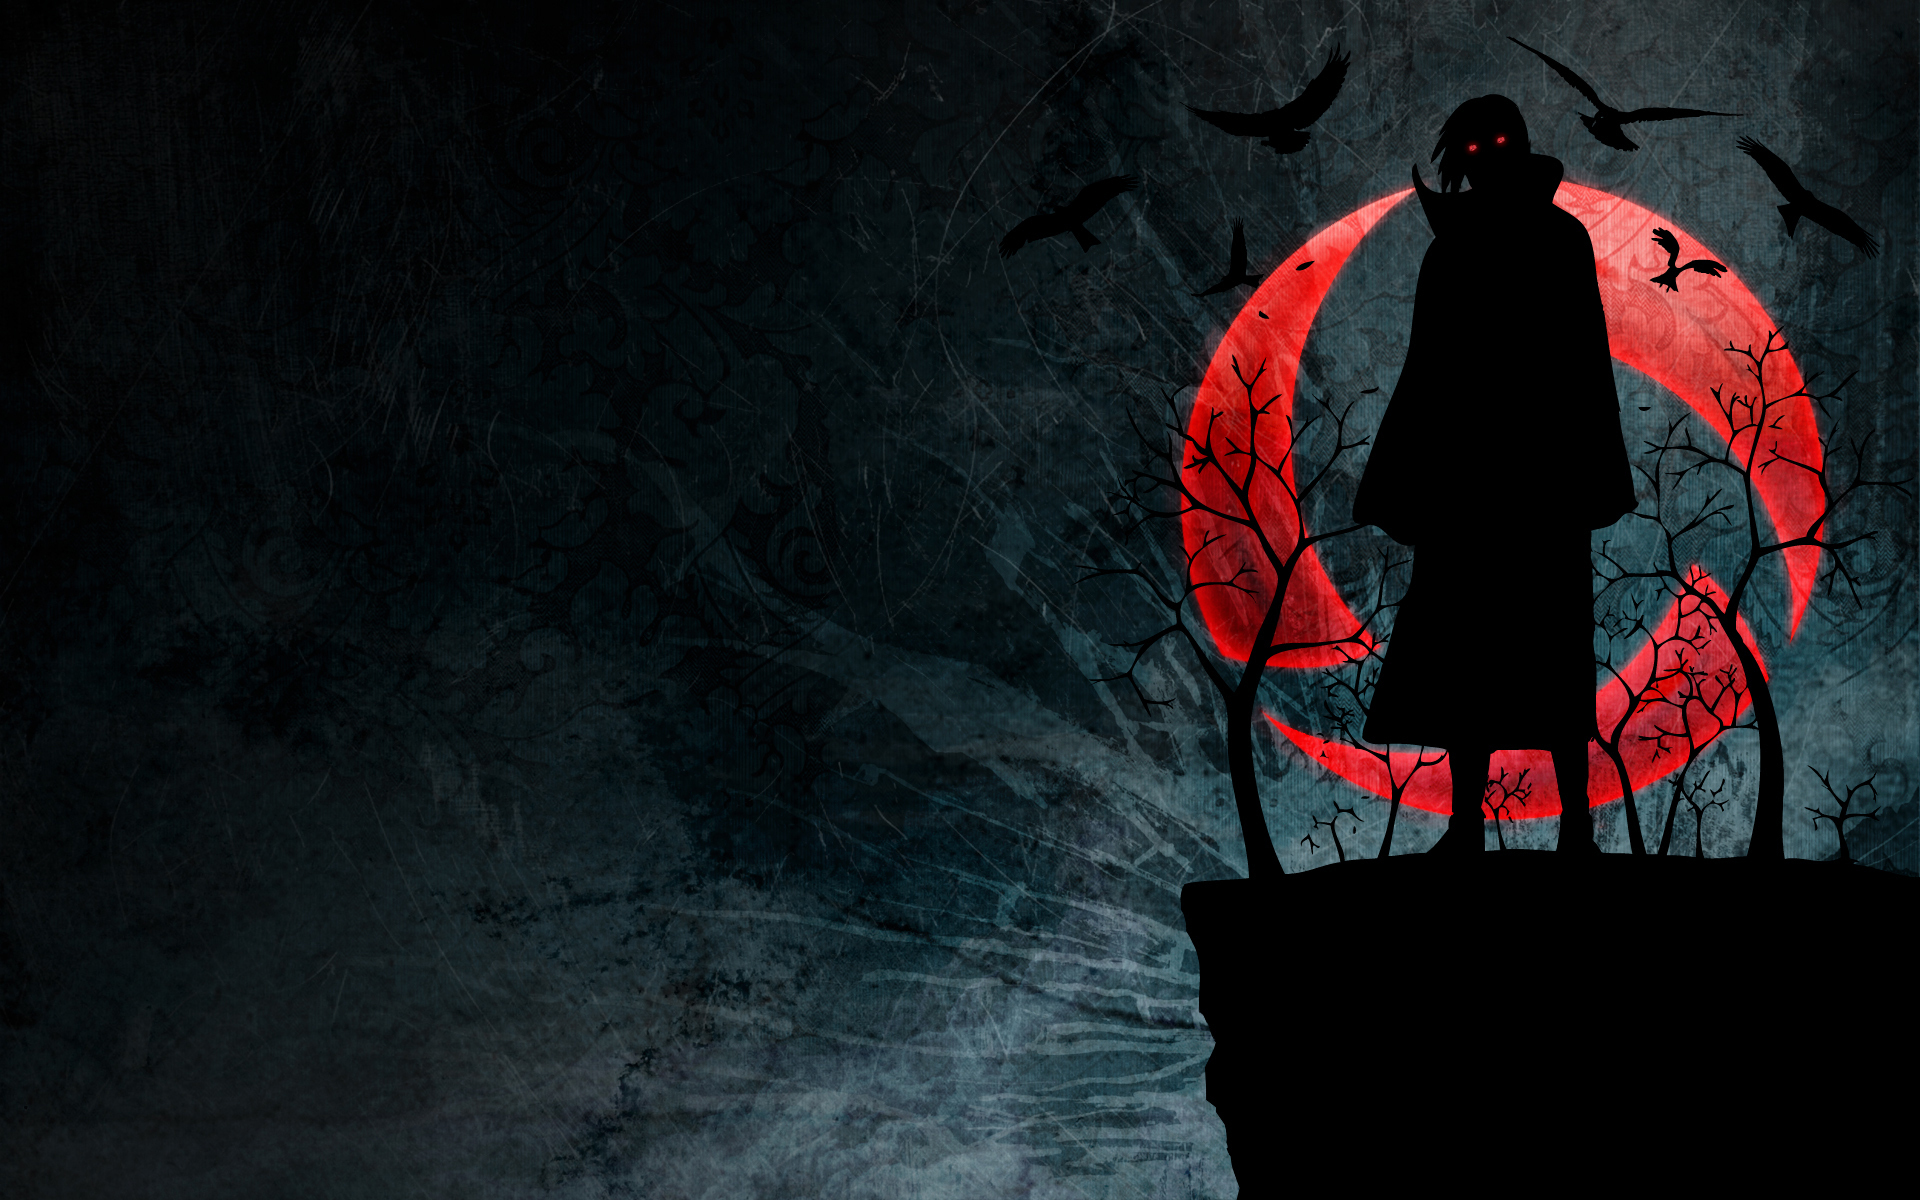 223 Itachi Uchiha Hd Wallpapers Background Images Wallpaper Abyss